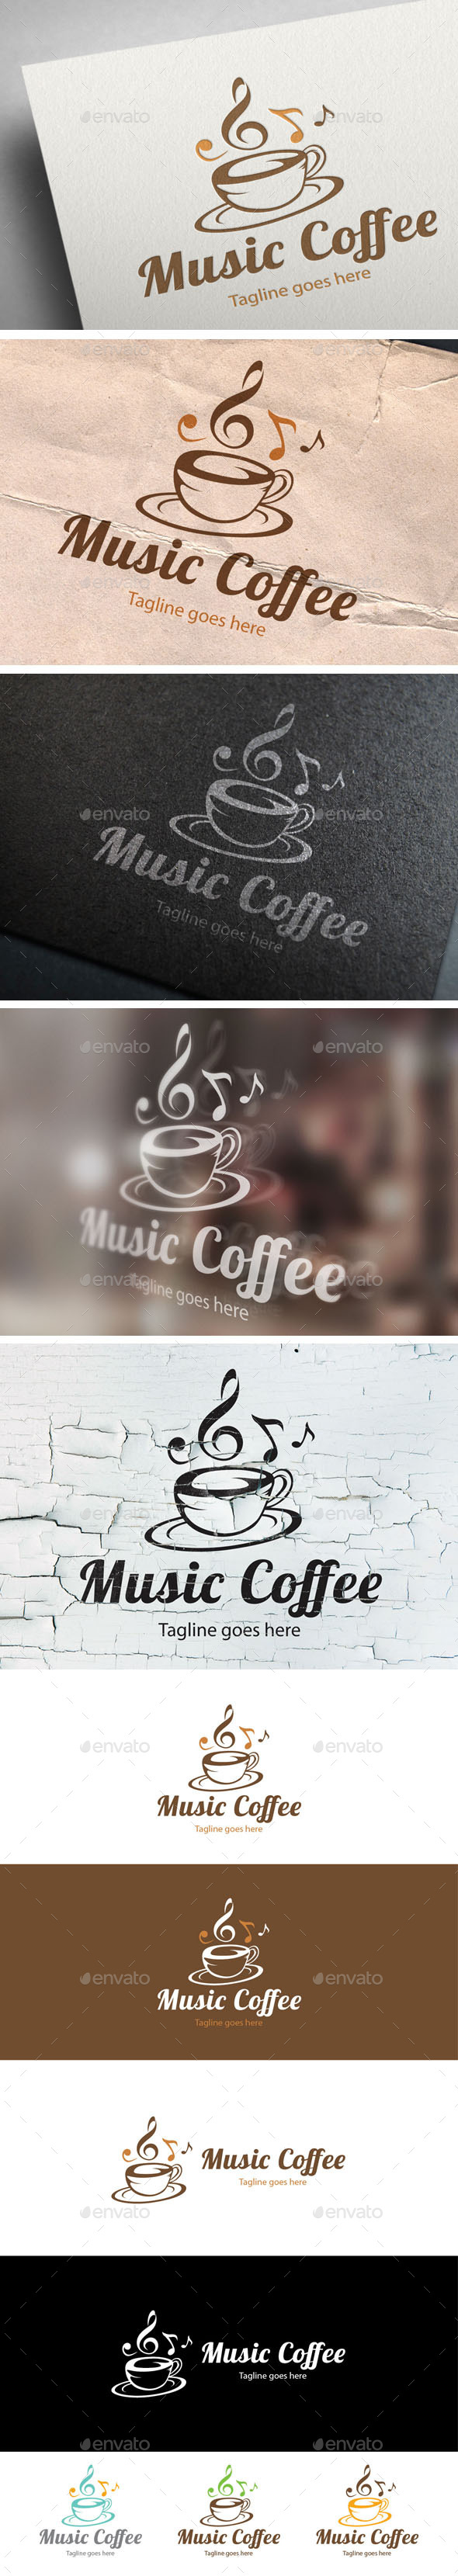 Music Coffee Logo Design - Food Logo Templates